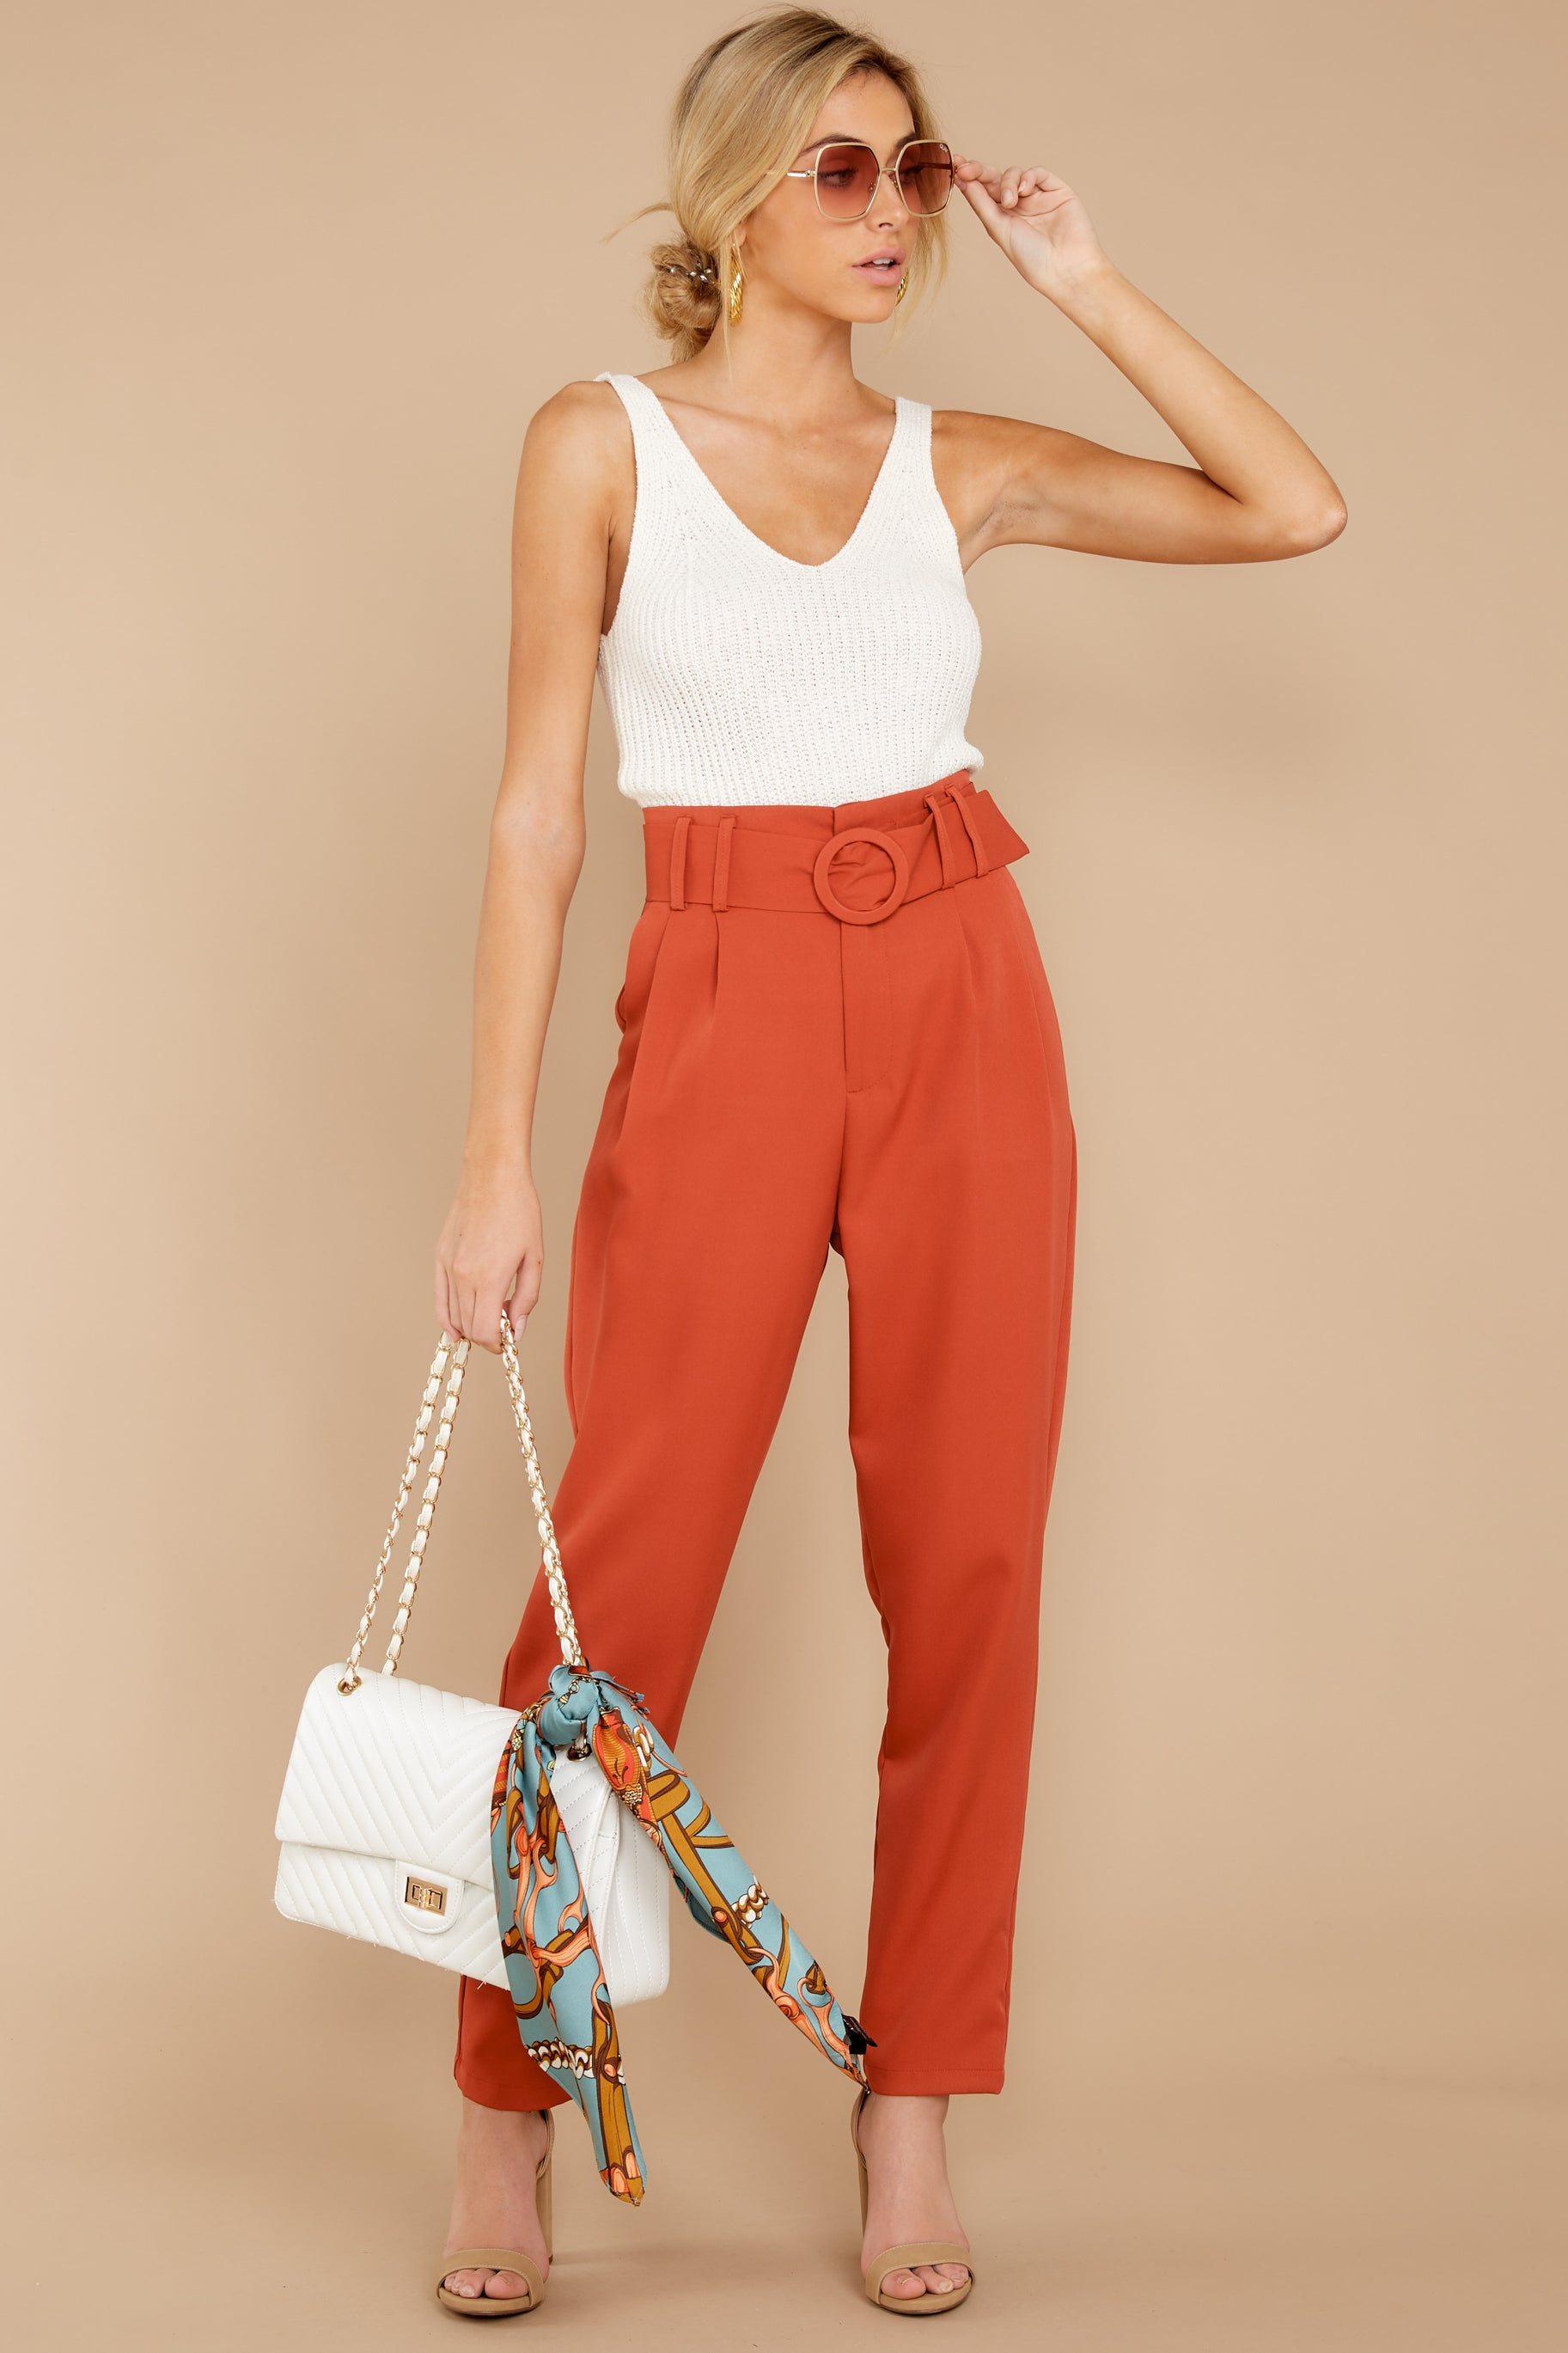 Into The Office Coral Orange Pants